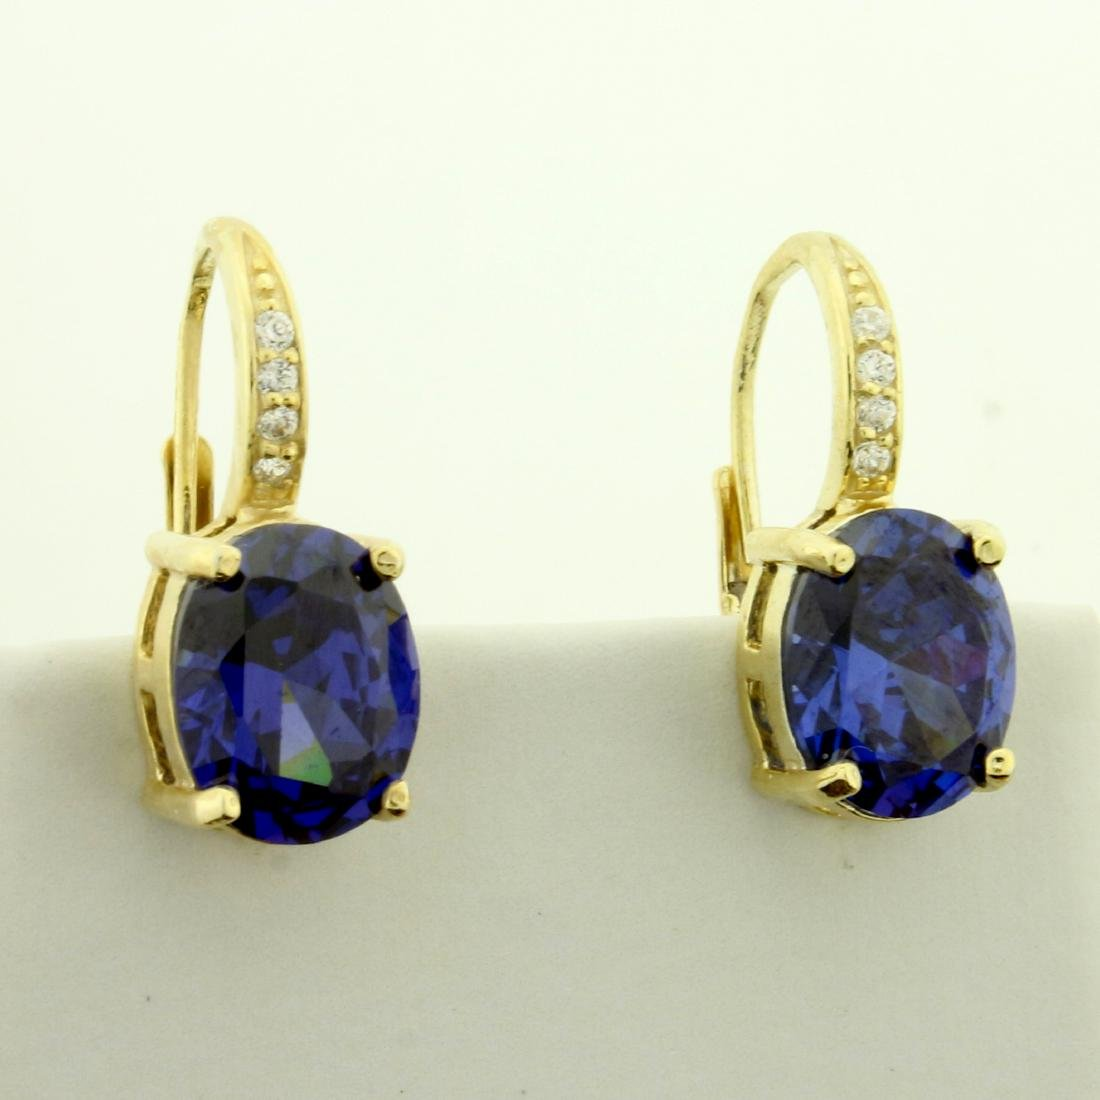 6ct TW Lab Tanzanite and CZ Earrings in Sterling Silver - 2